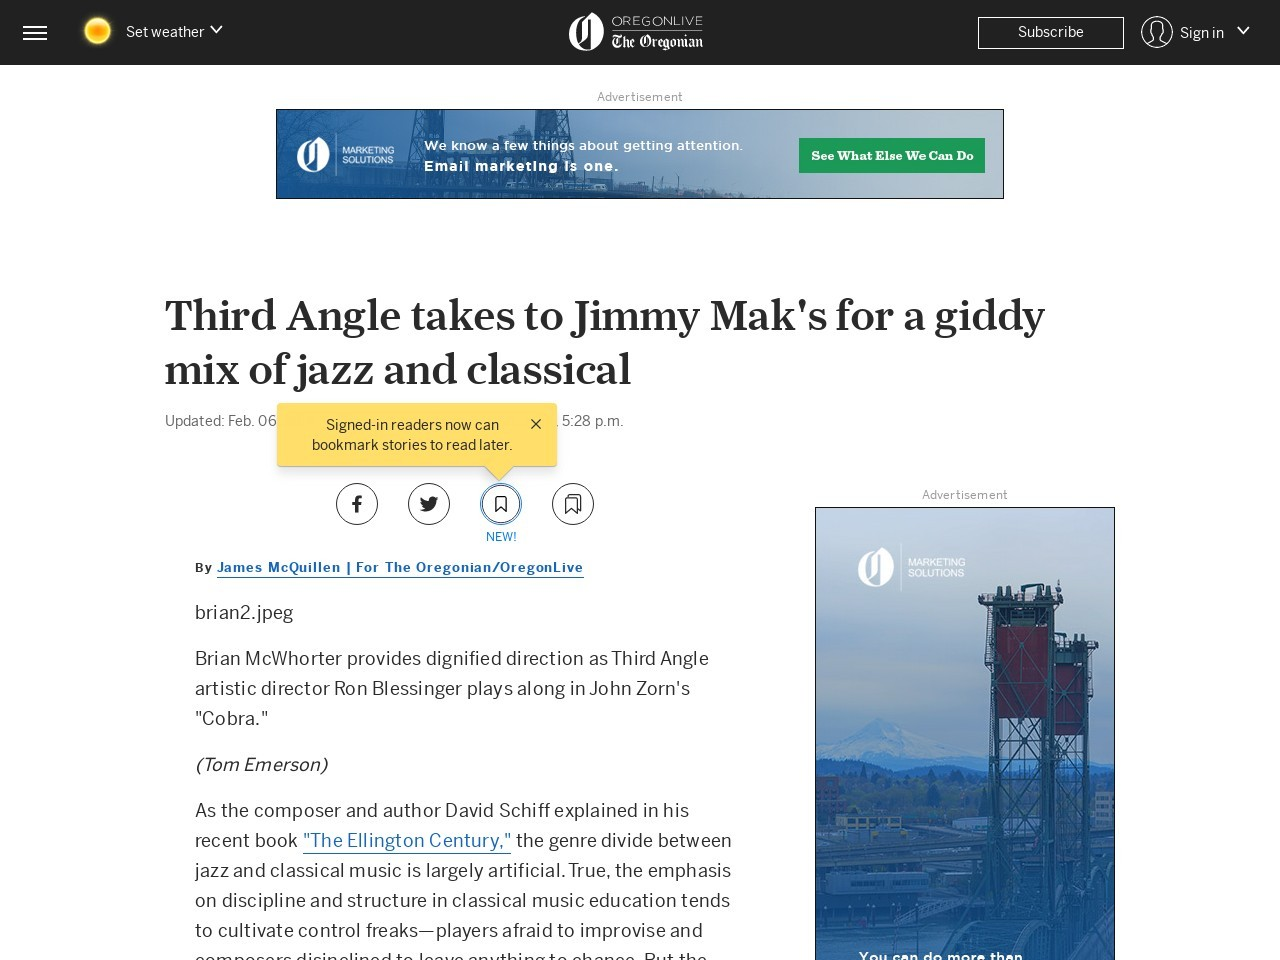 Third Angle takes to Jimmy Mak's for a giddy mix of jazz and classical